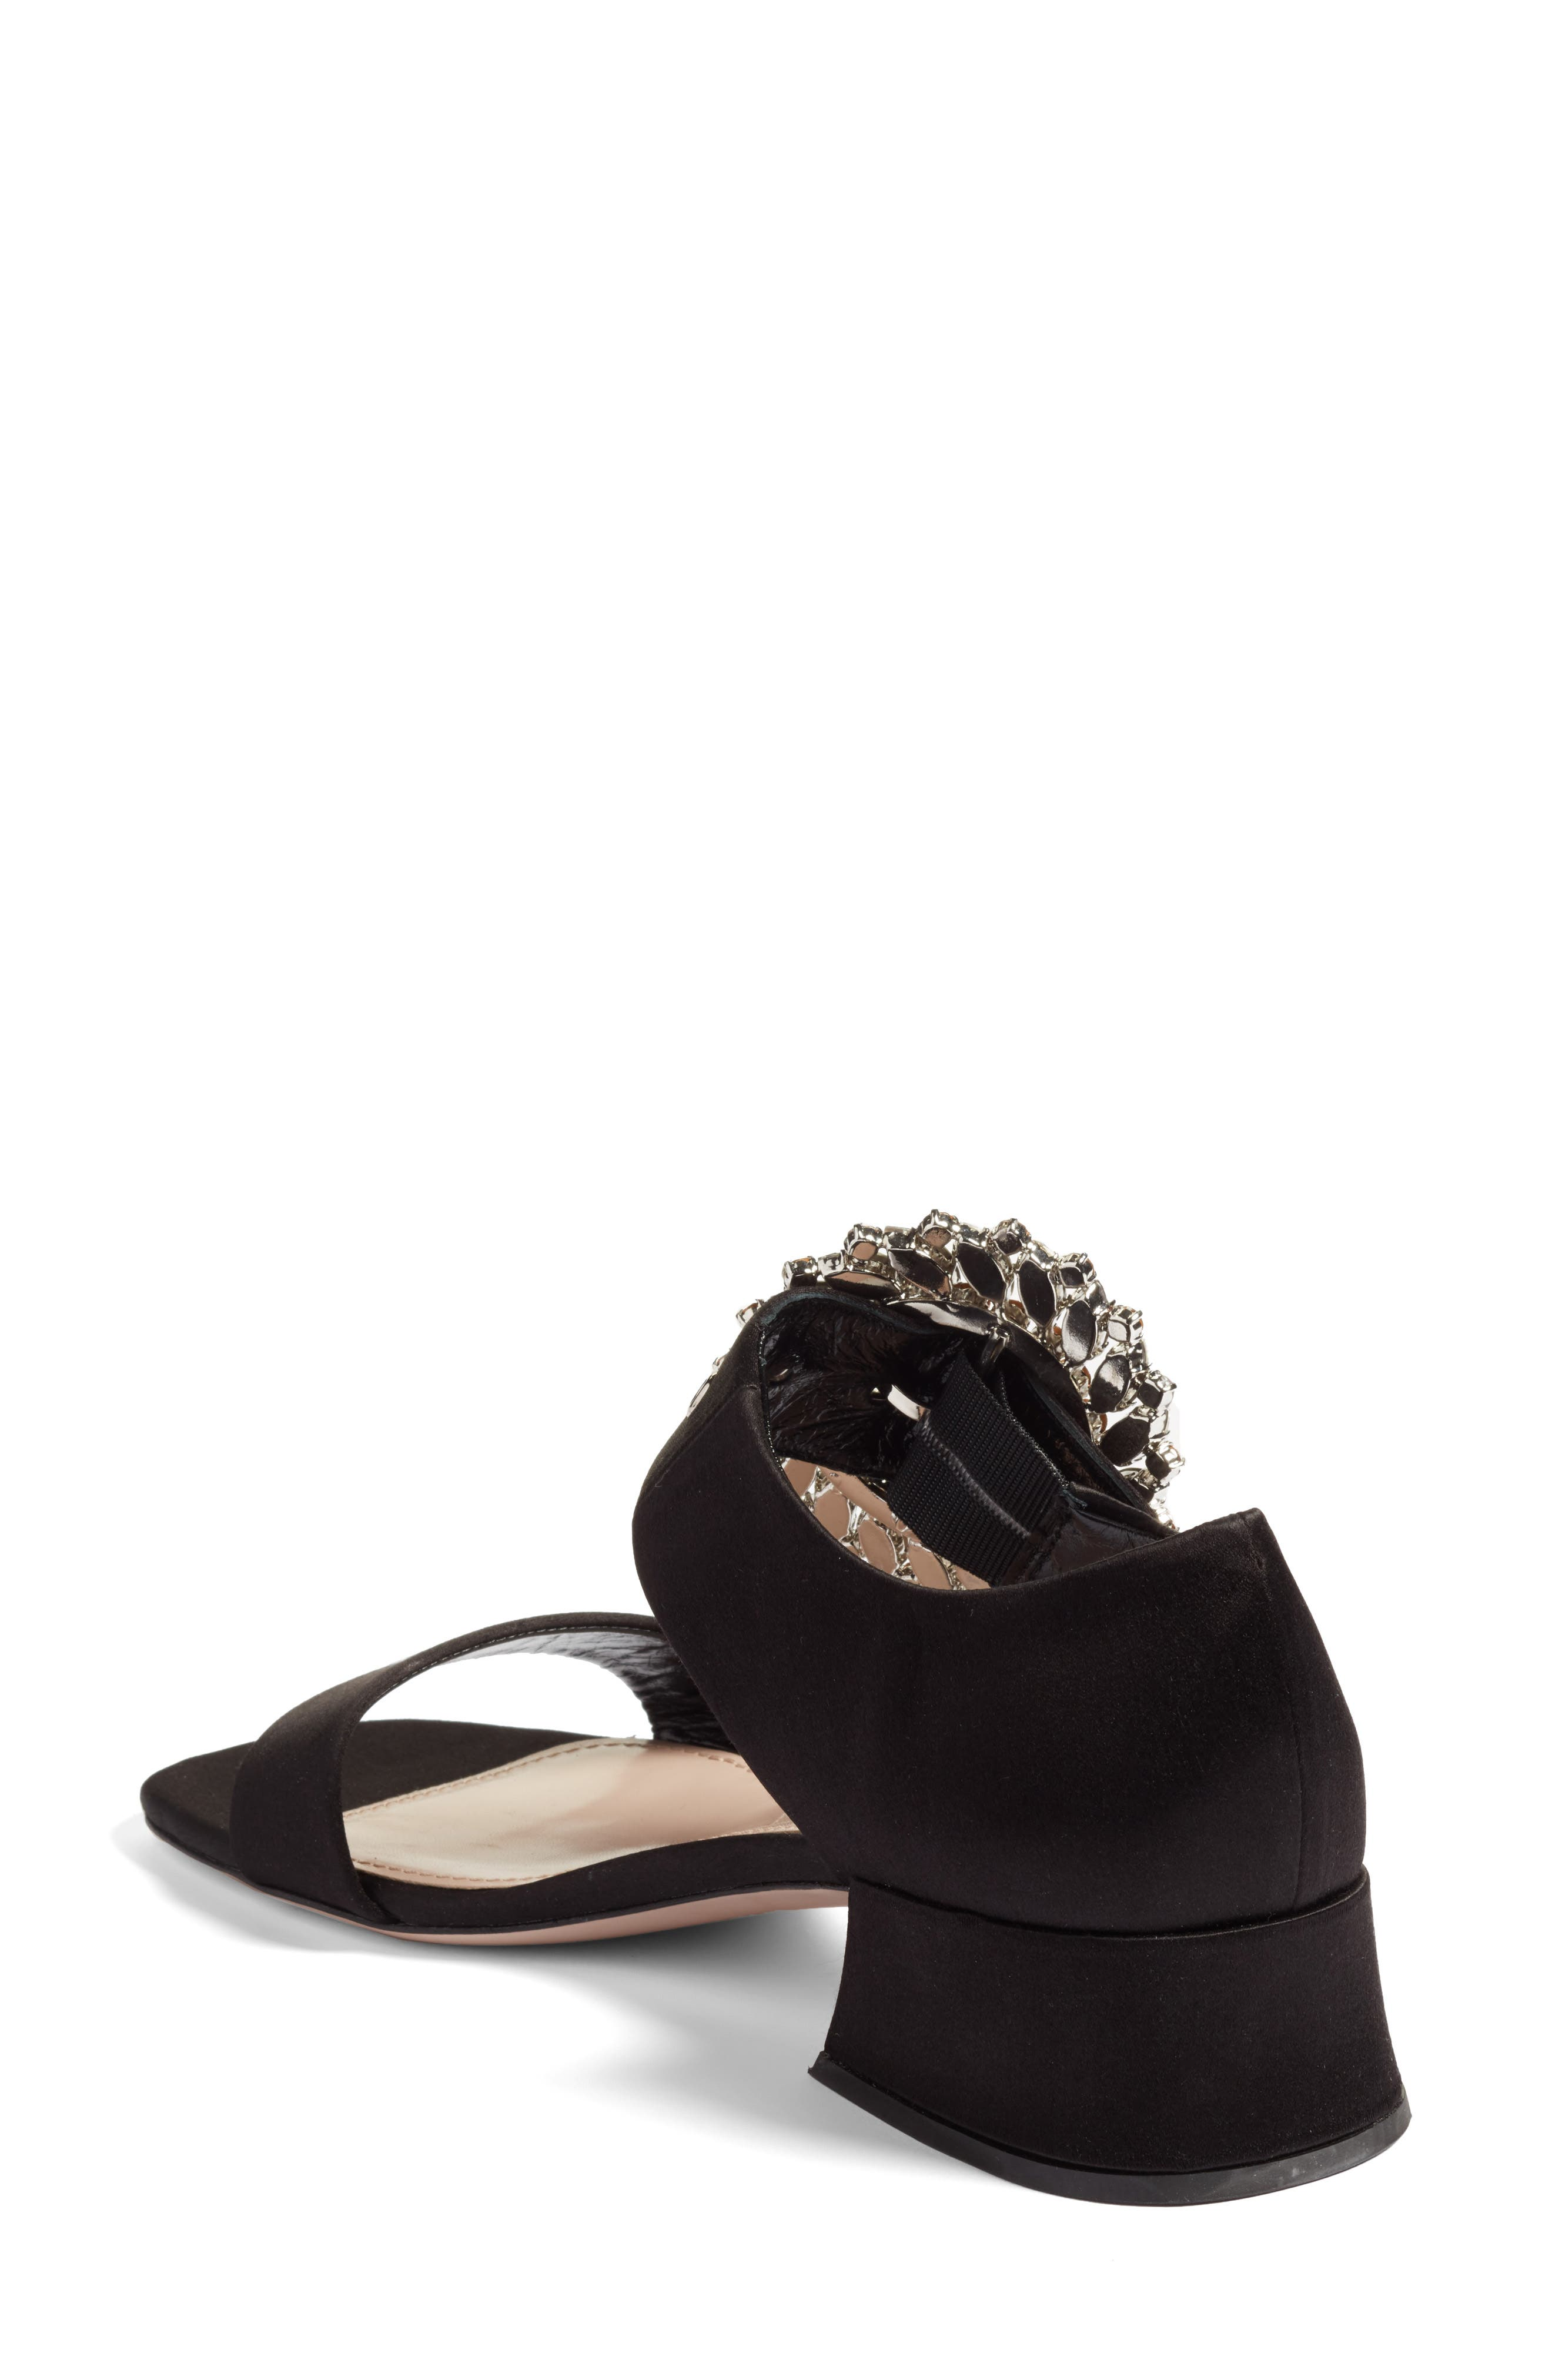 Alternate Image 2  - Miu Miu Crystal Buckle Mary Jane Sandal (Women)